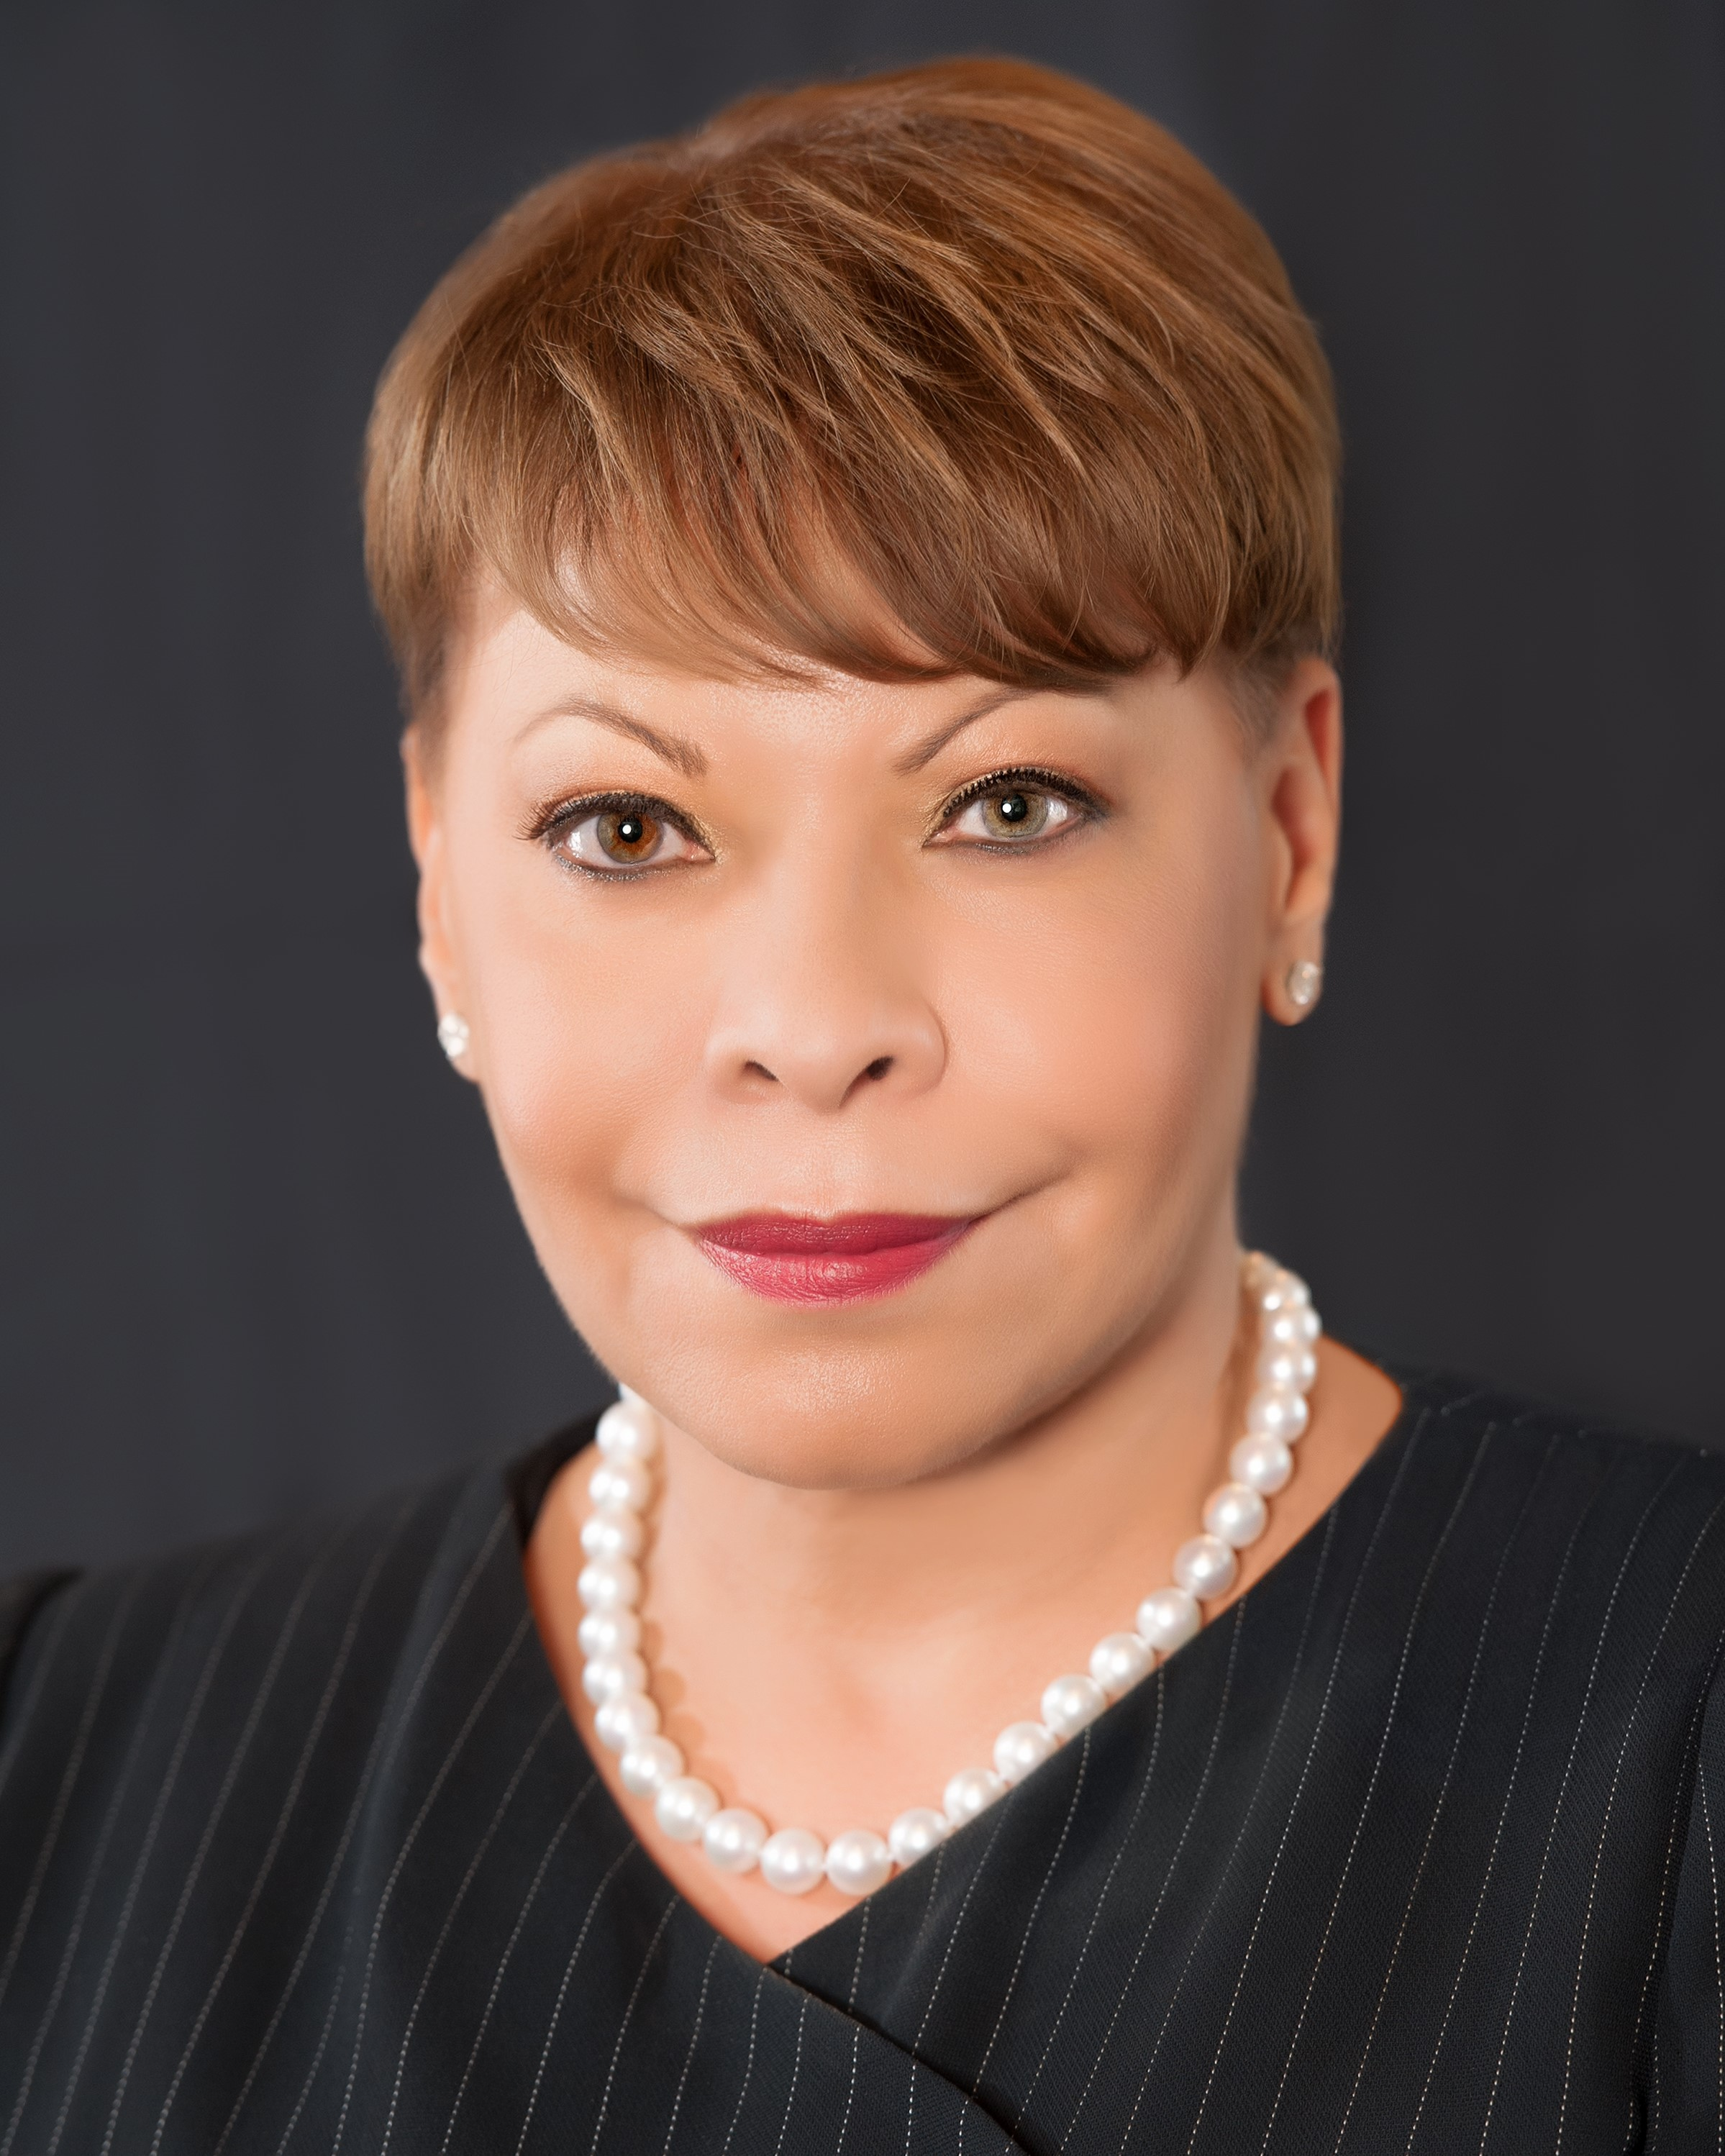 Picture of Linda R. Gooden